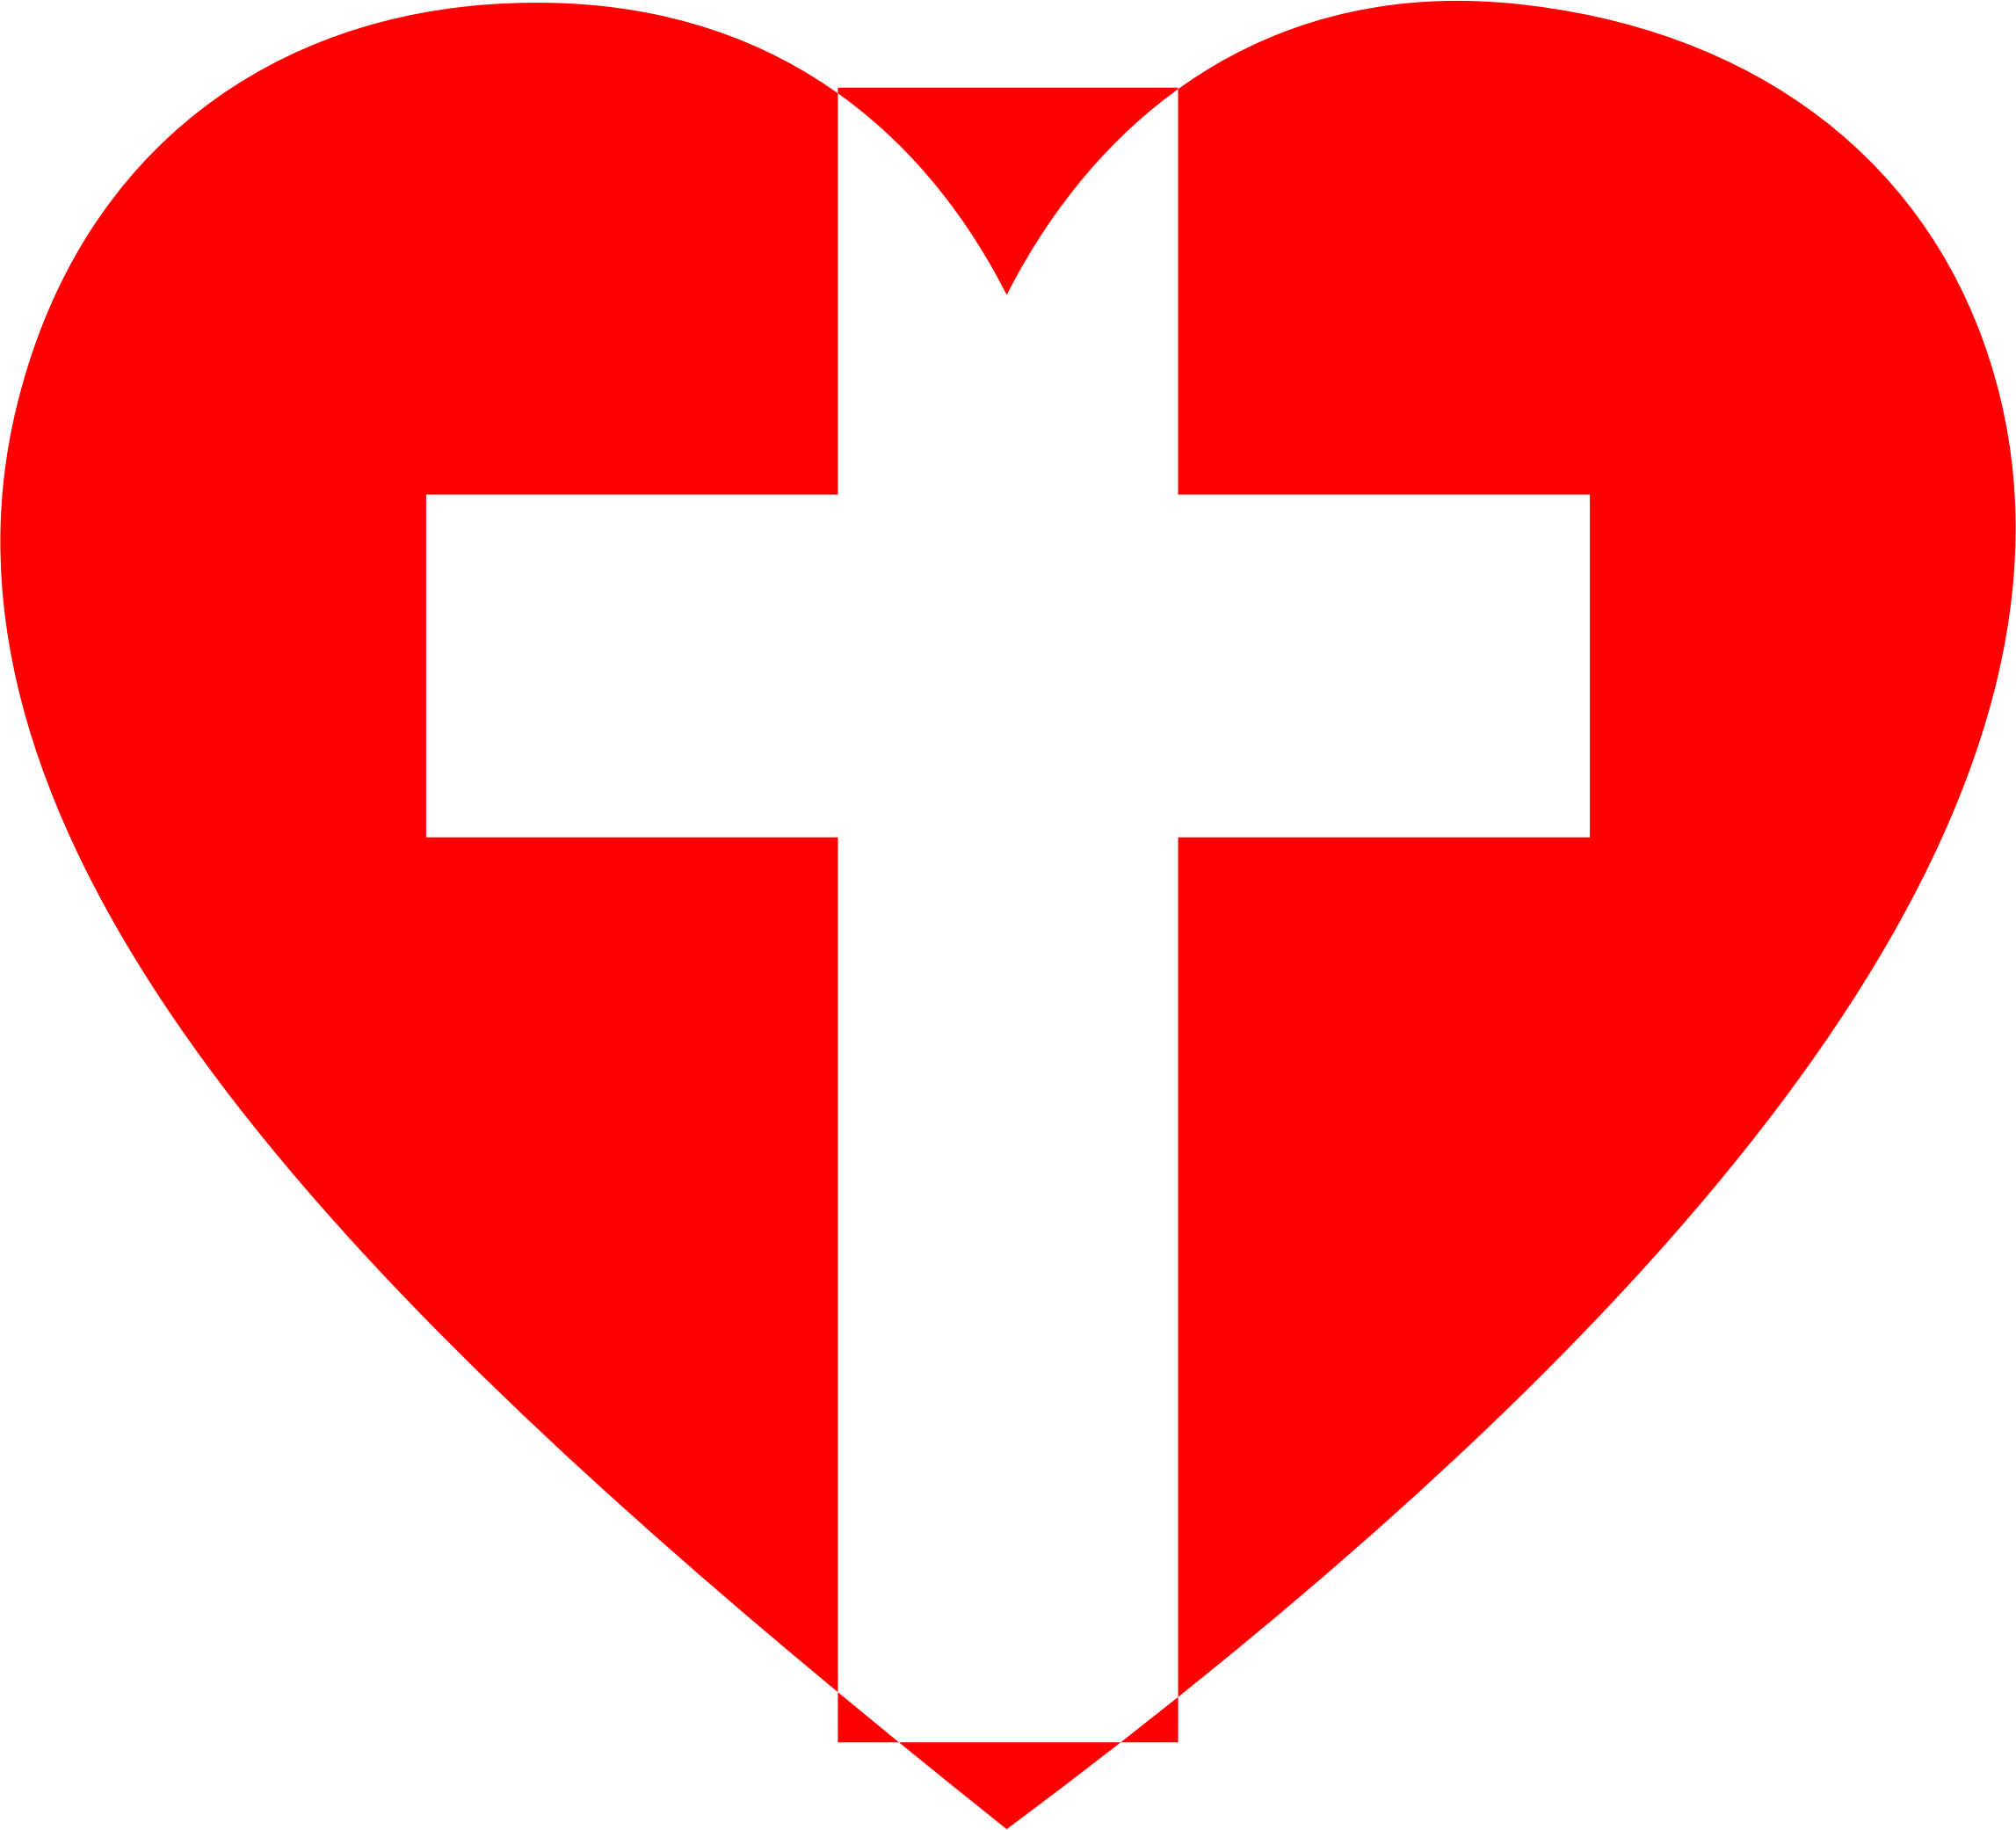 2 heart clipart image black and white stock Clipart - Heart Cross 2 image black and white stock